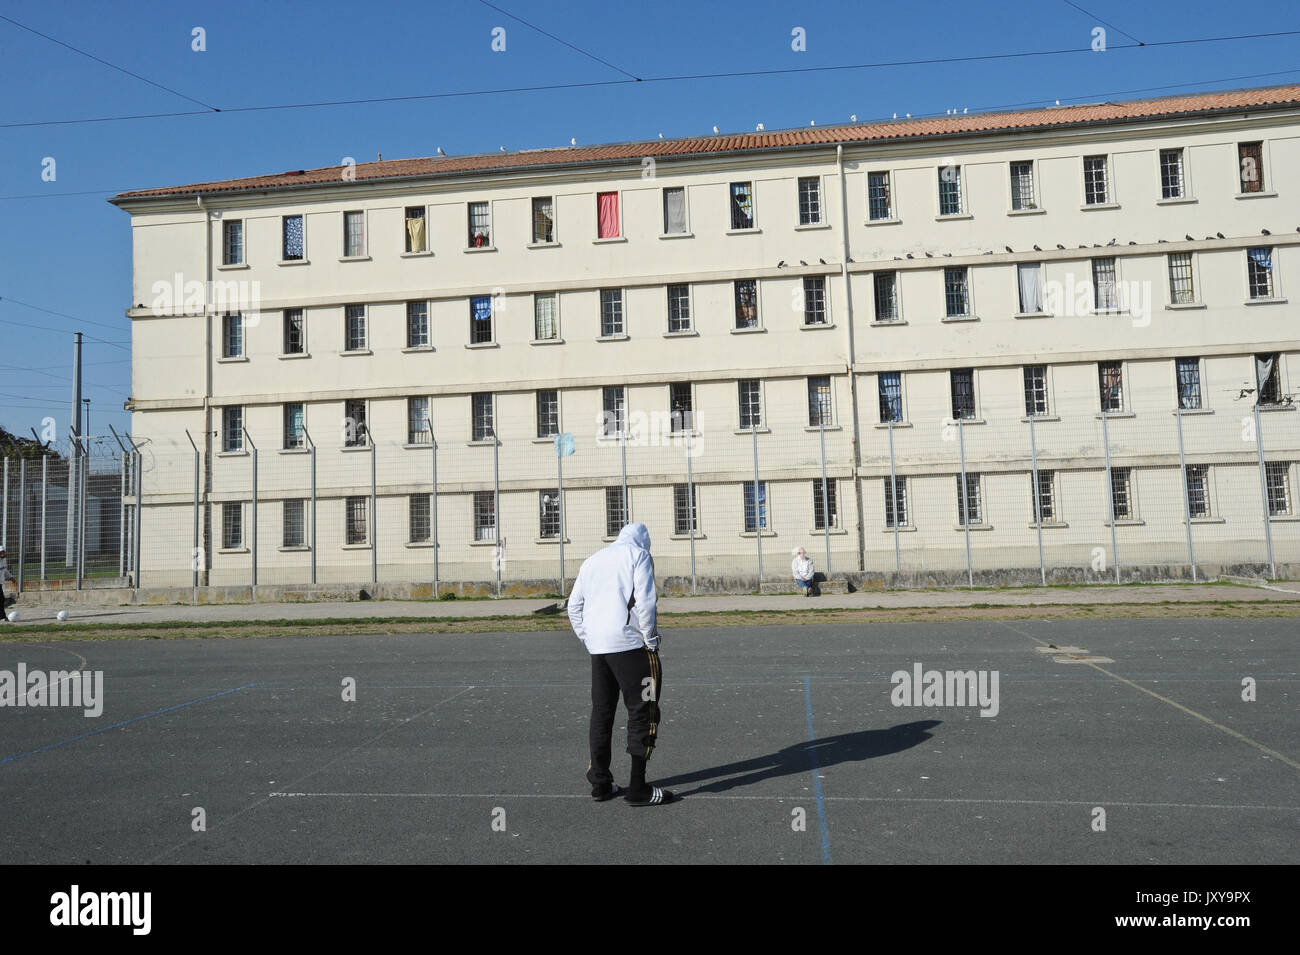 Saint-Martin-de-Re on 2015/10/02: prisoners in the courtyard of the prison - Stock Image